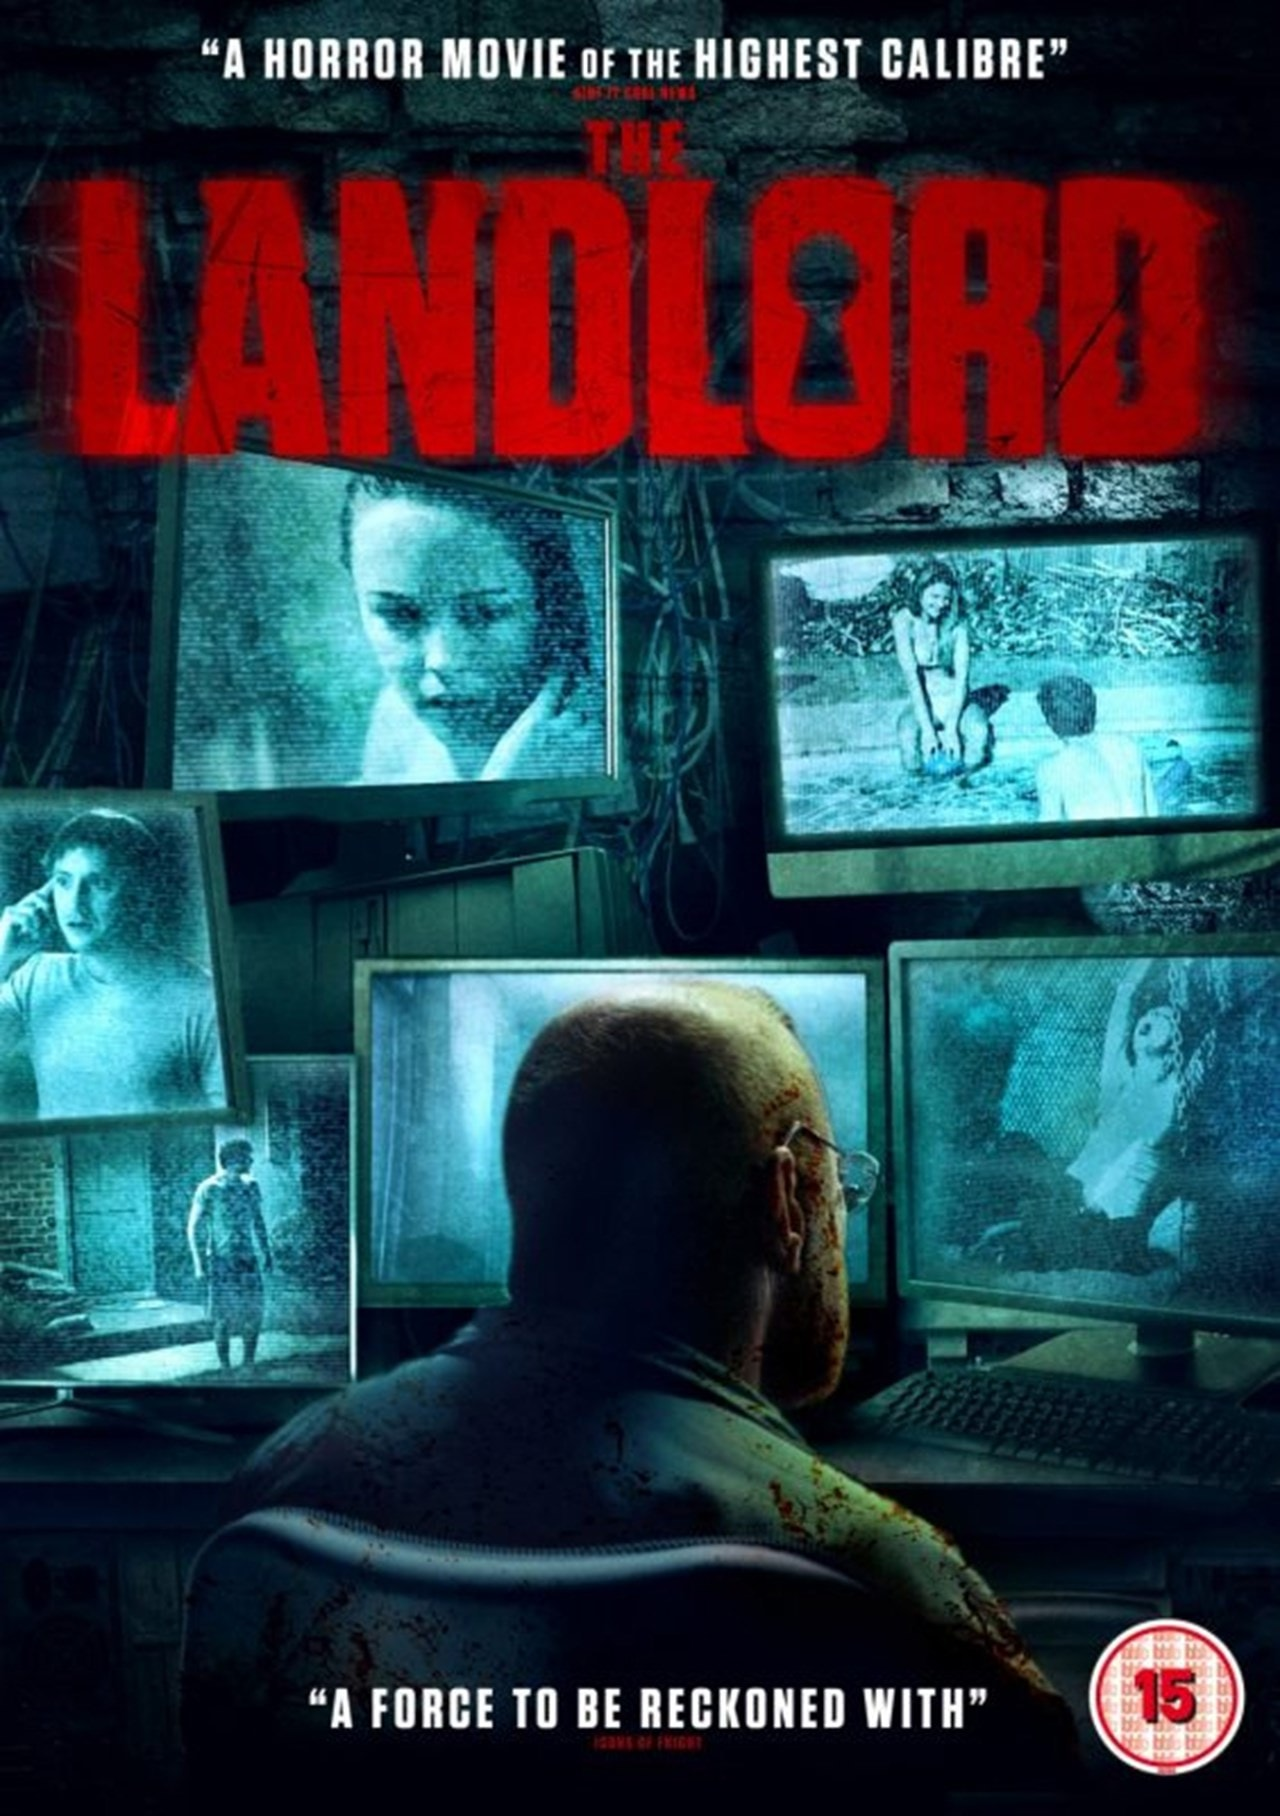 The Landlord - 1